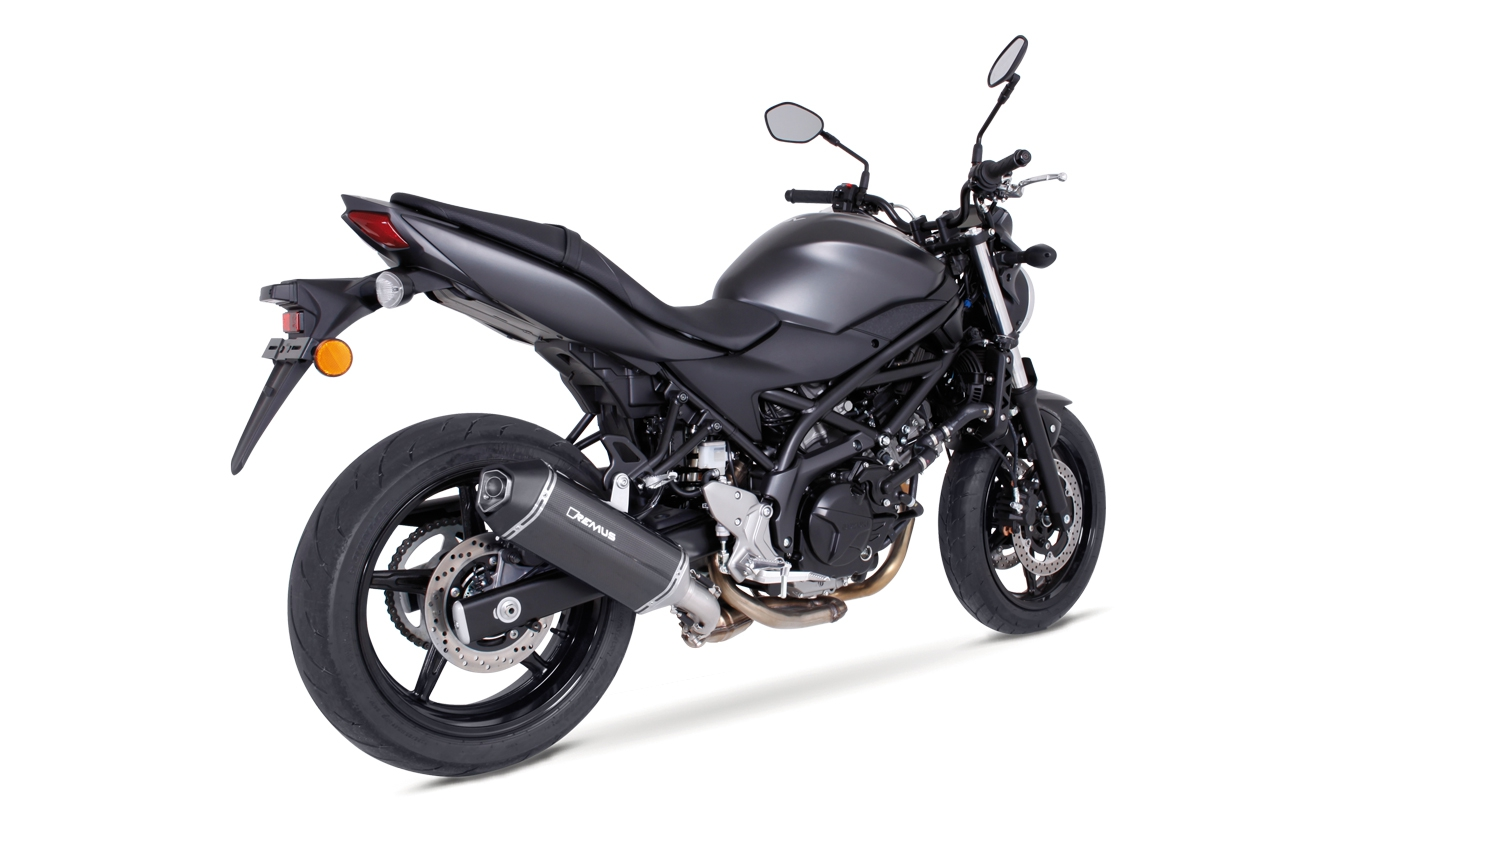 remus news bike info 13 16 suzuki sv 650 mod 16. Black Bedroom Furniture Sets. Home Design Ideas